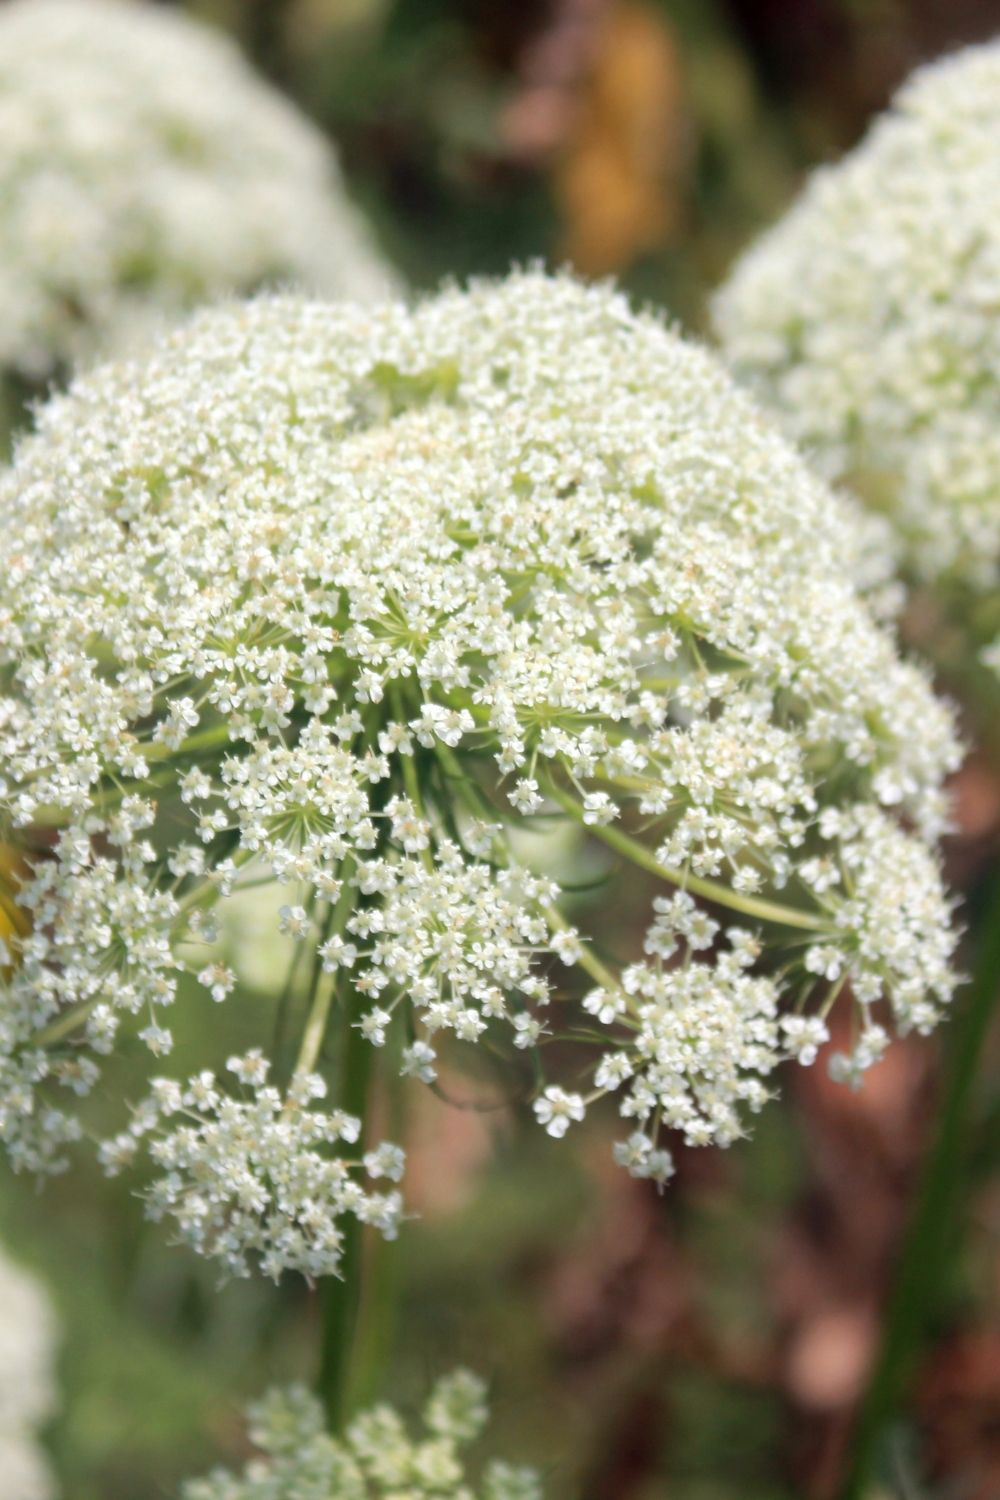 close-up image of carrot flowers during the second year of growth